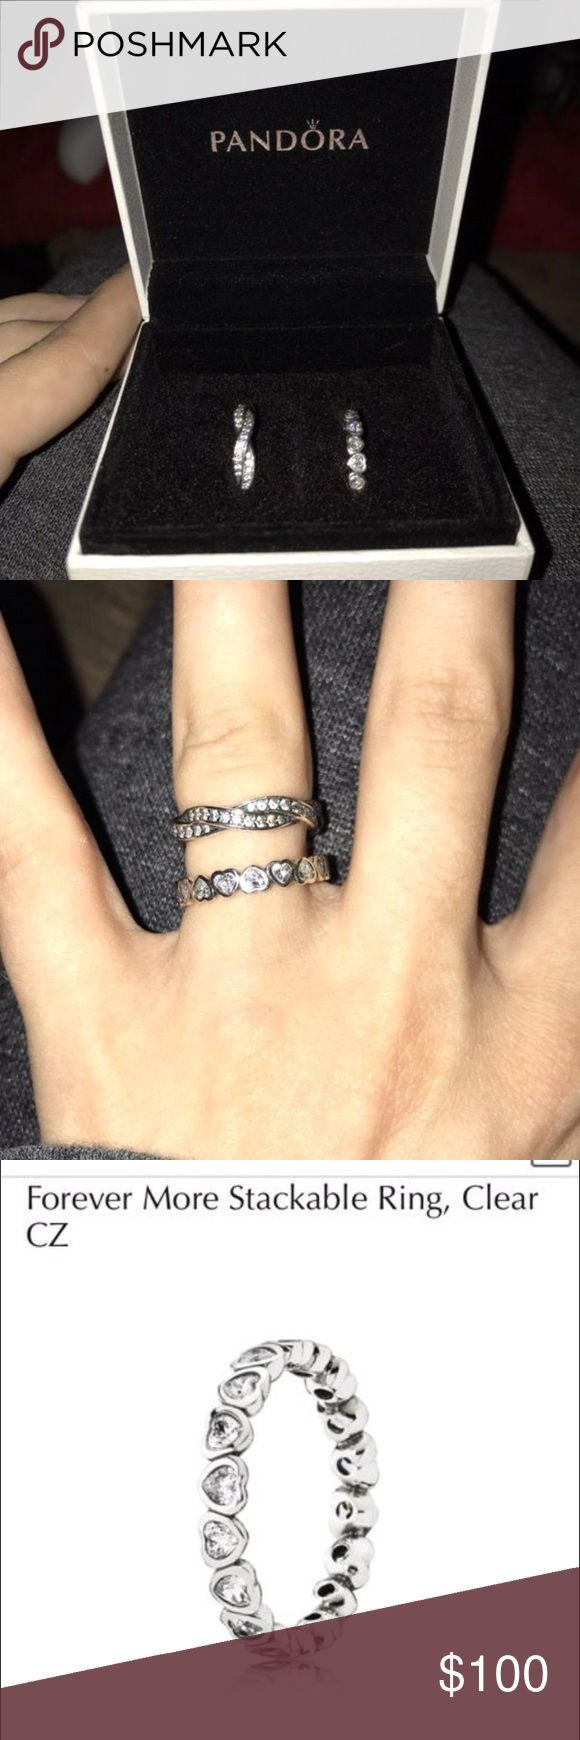 Pandora stackable rings Twist of Fate and Forever More Pandora rings. Size 5 both worn maybe twice. Kept in box. Great condition! Originally paid $200 for both. Asking $100 for both or $50 each. Pandora Jewelry Rings